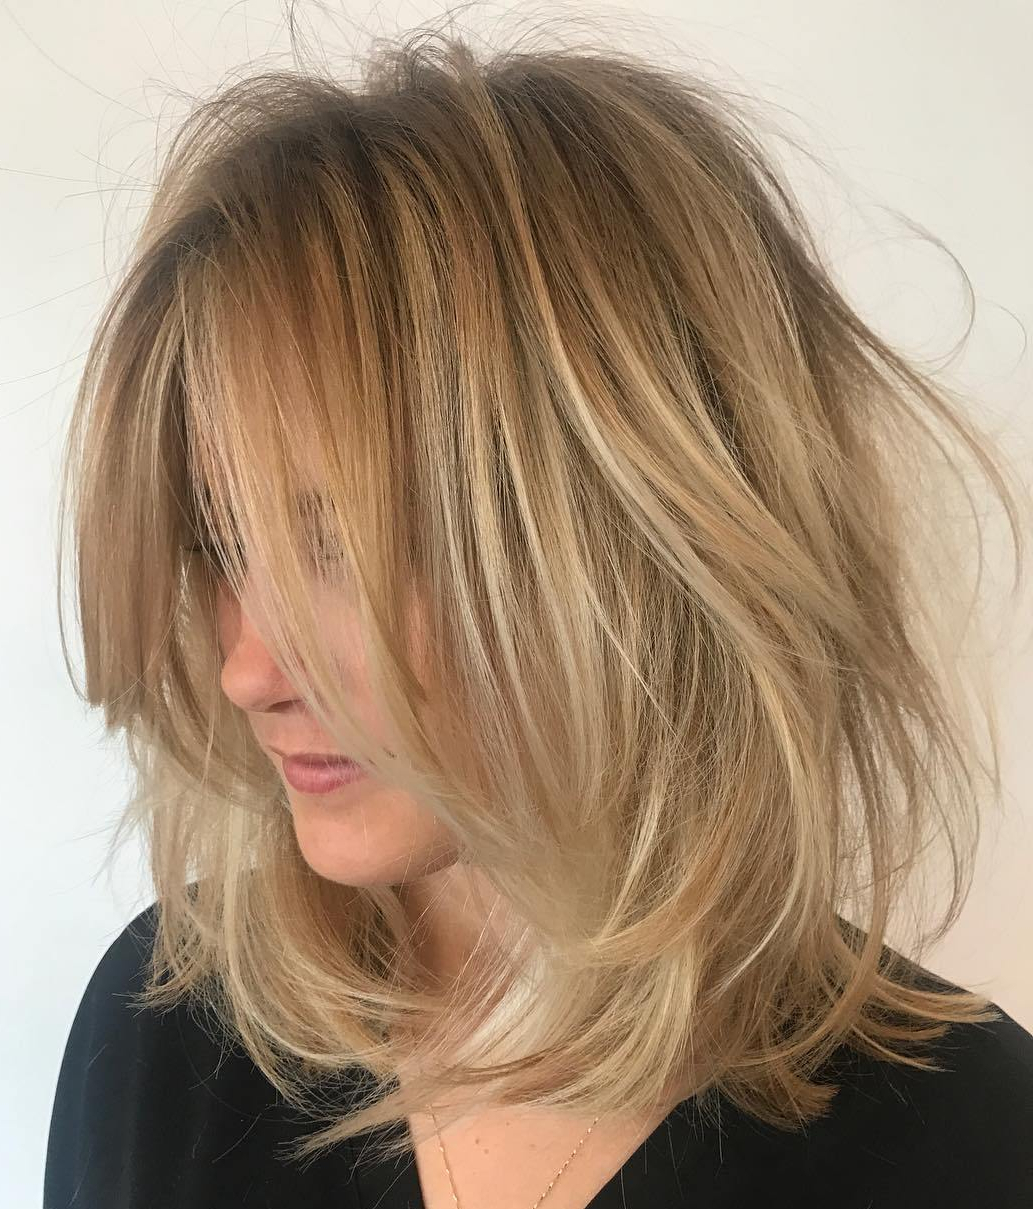 70 Devastatingly Cool Haircuts For Thin Hair Pertaining To Well Known Long Texture Revealing Layers Hairstyles (Gallery 10 of 20)